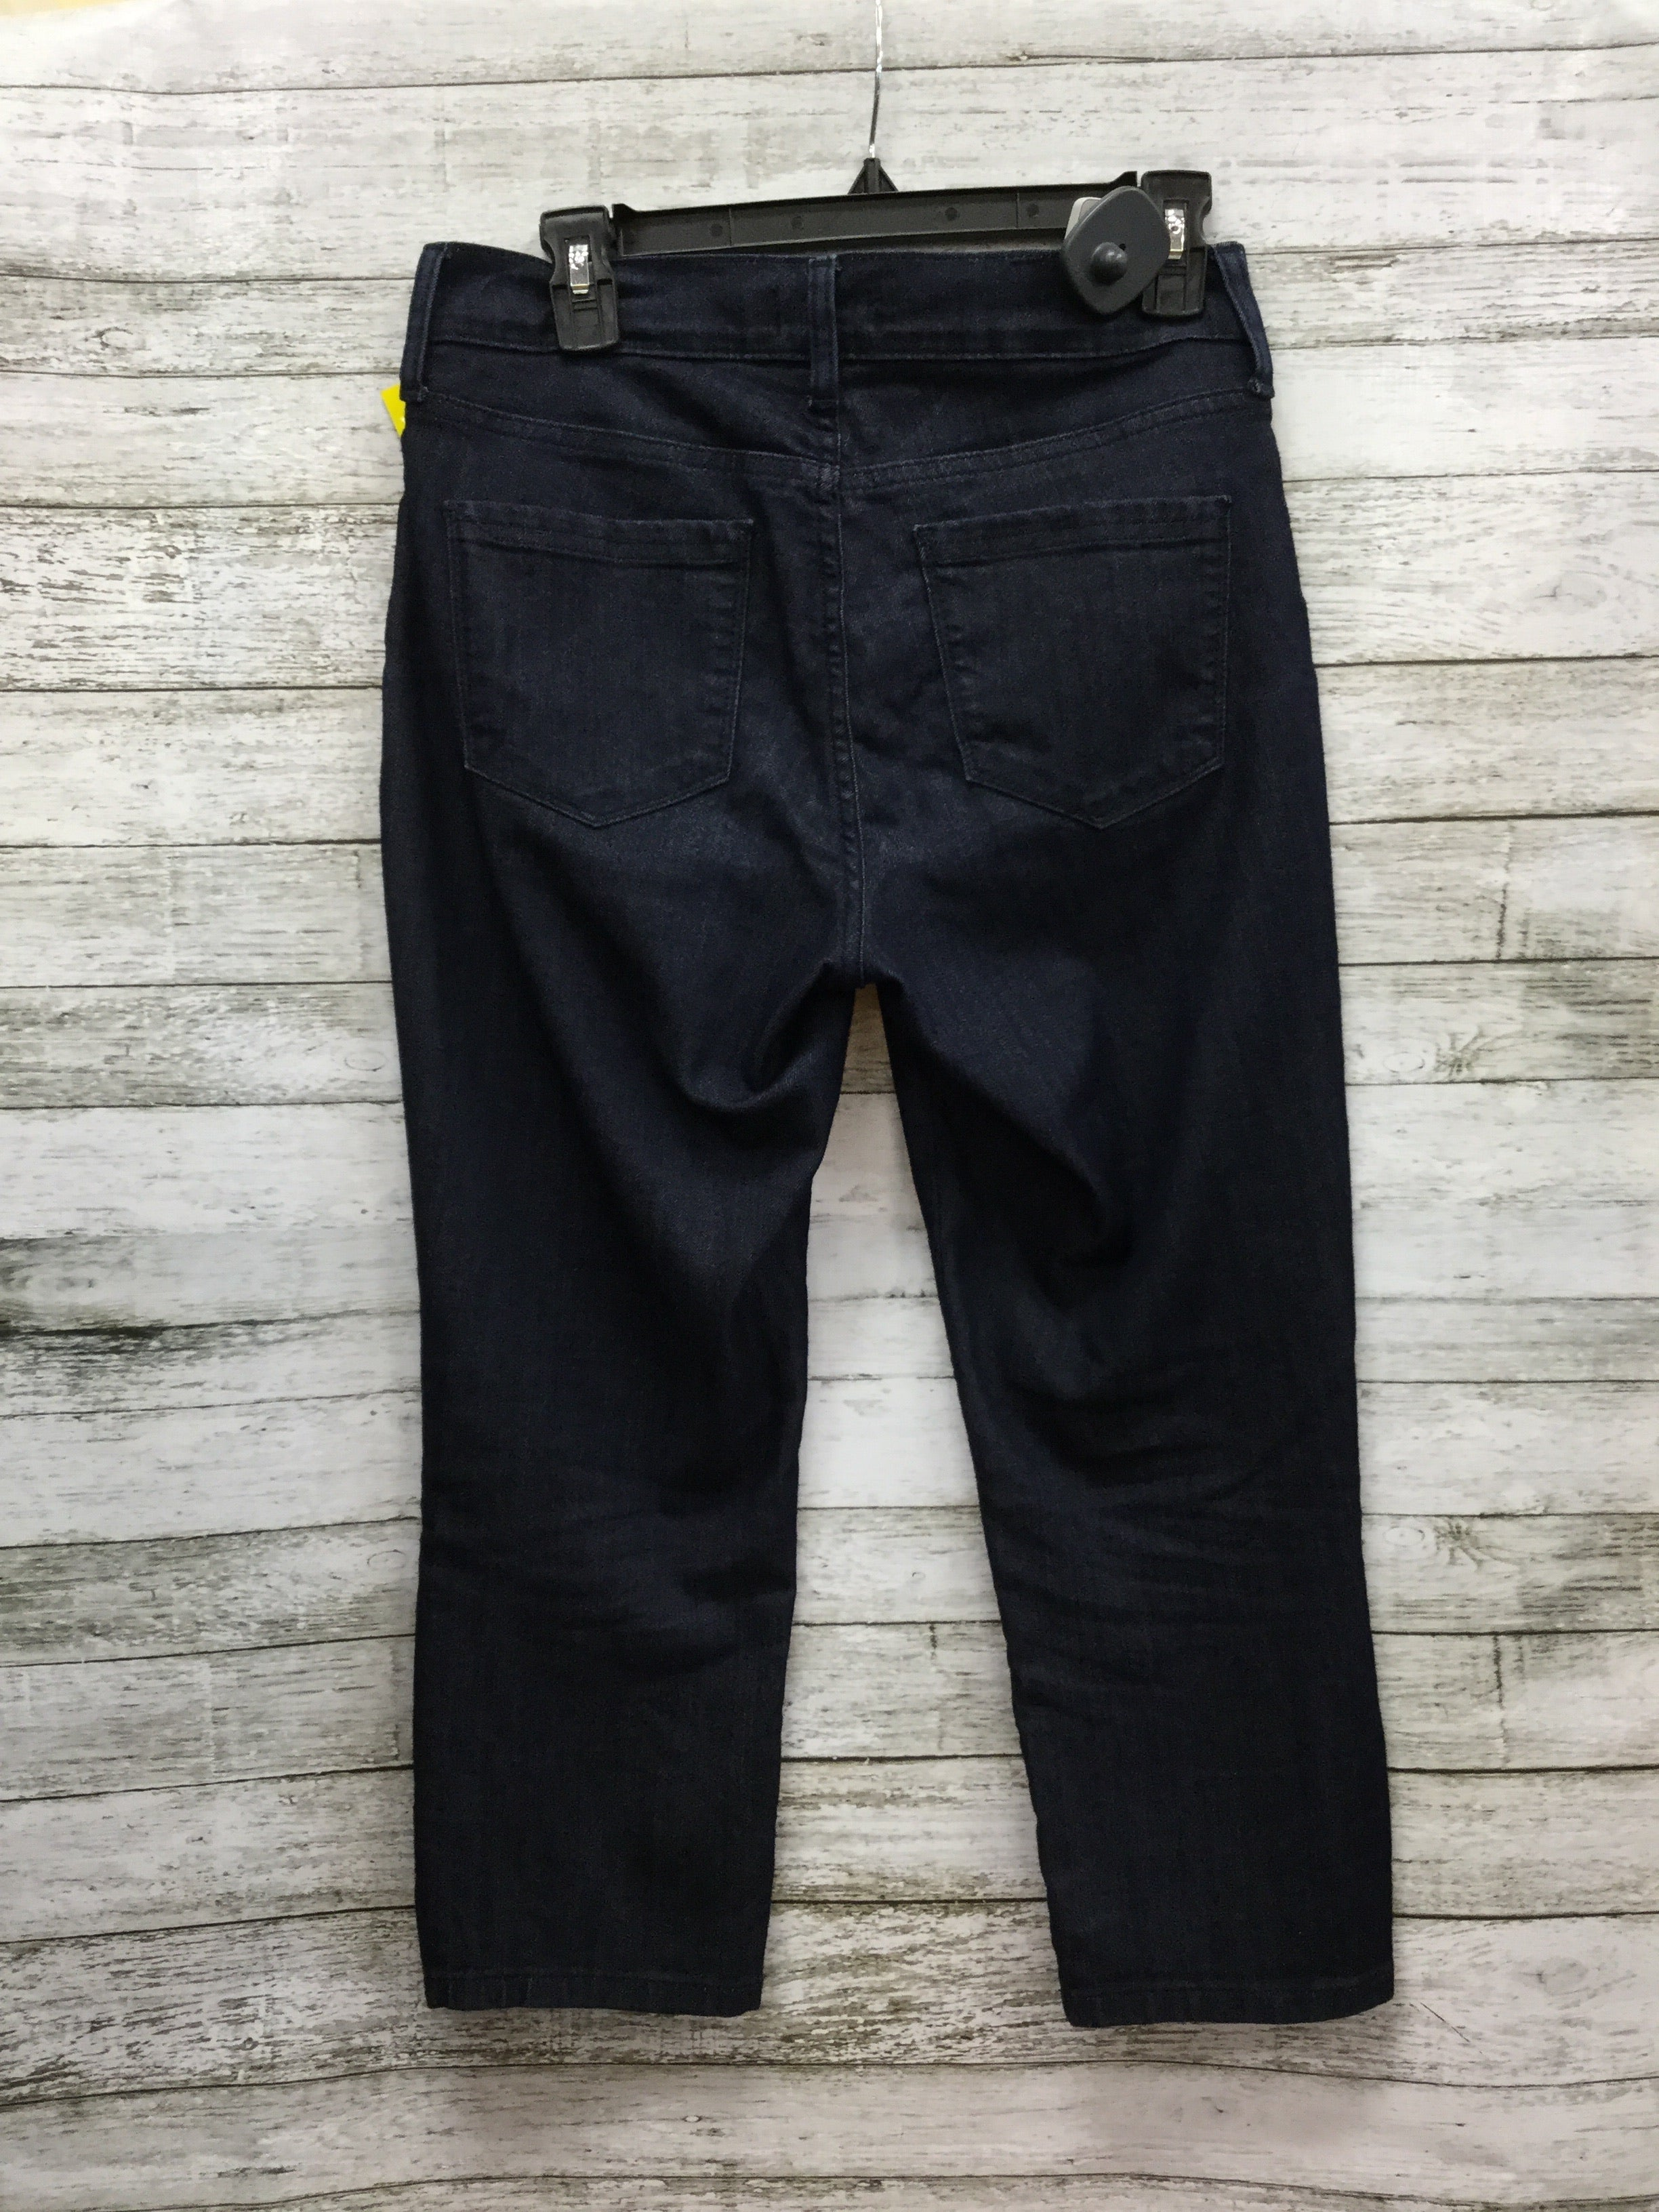 Photo #2 - BRAND: NOT YOUR DAUGHTERS JEANS , STYLE: JEANS , COLOR: DENIM , SIZE: 4 PETITE, SKU: 127-2767-86450, , SIZE 4 PETITE IN GREAT CONDITION.